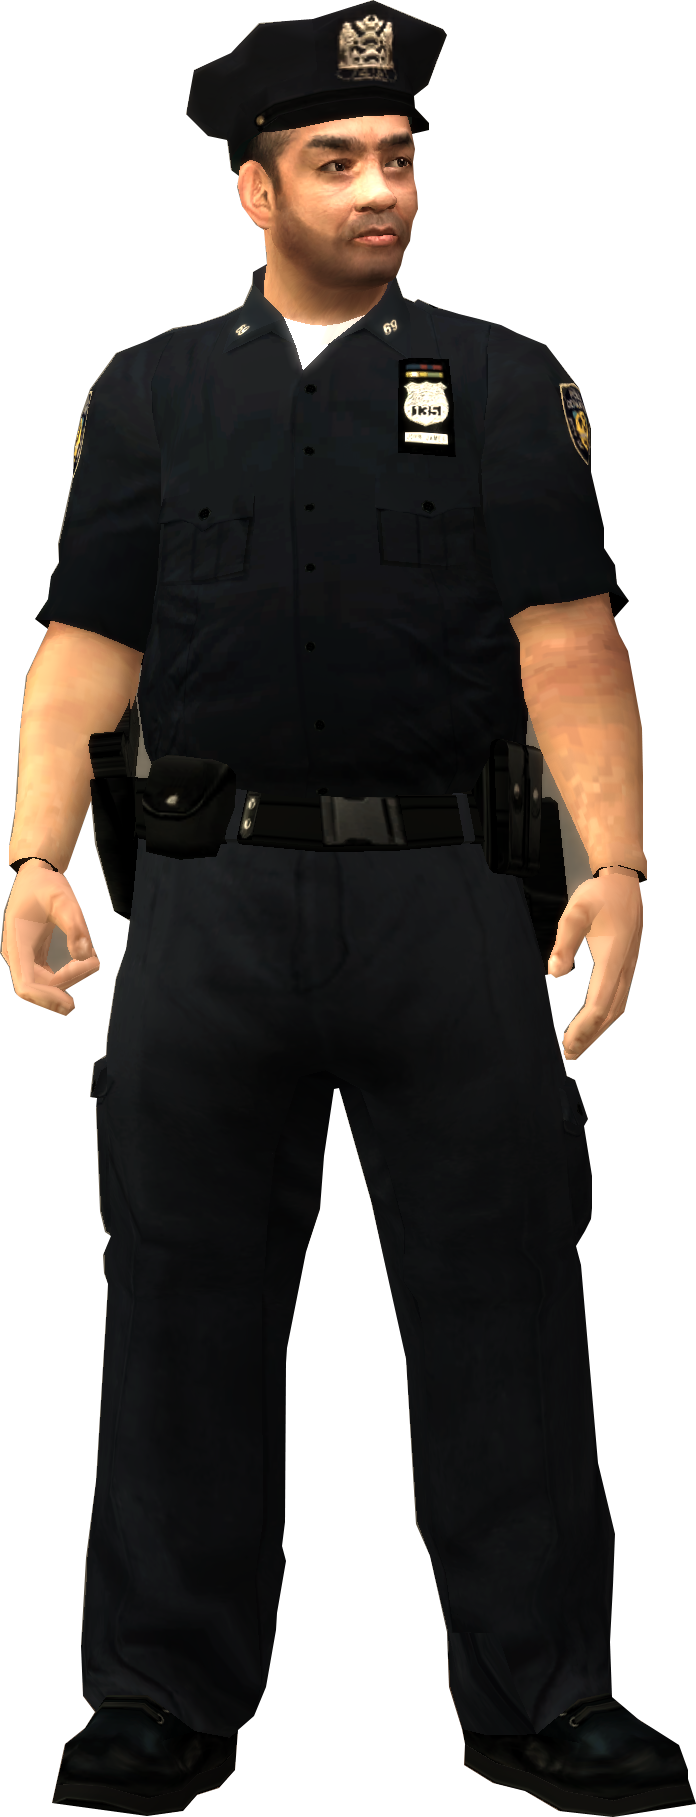 Gta 5 police png. Lcpdfr loading screen theme